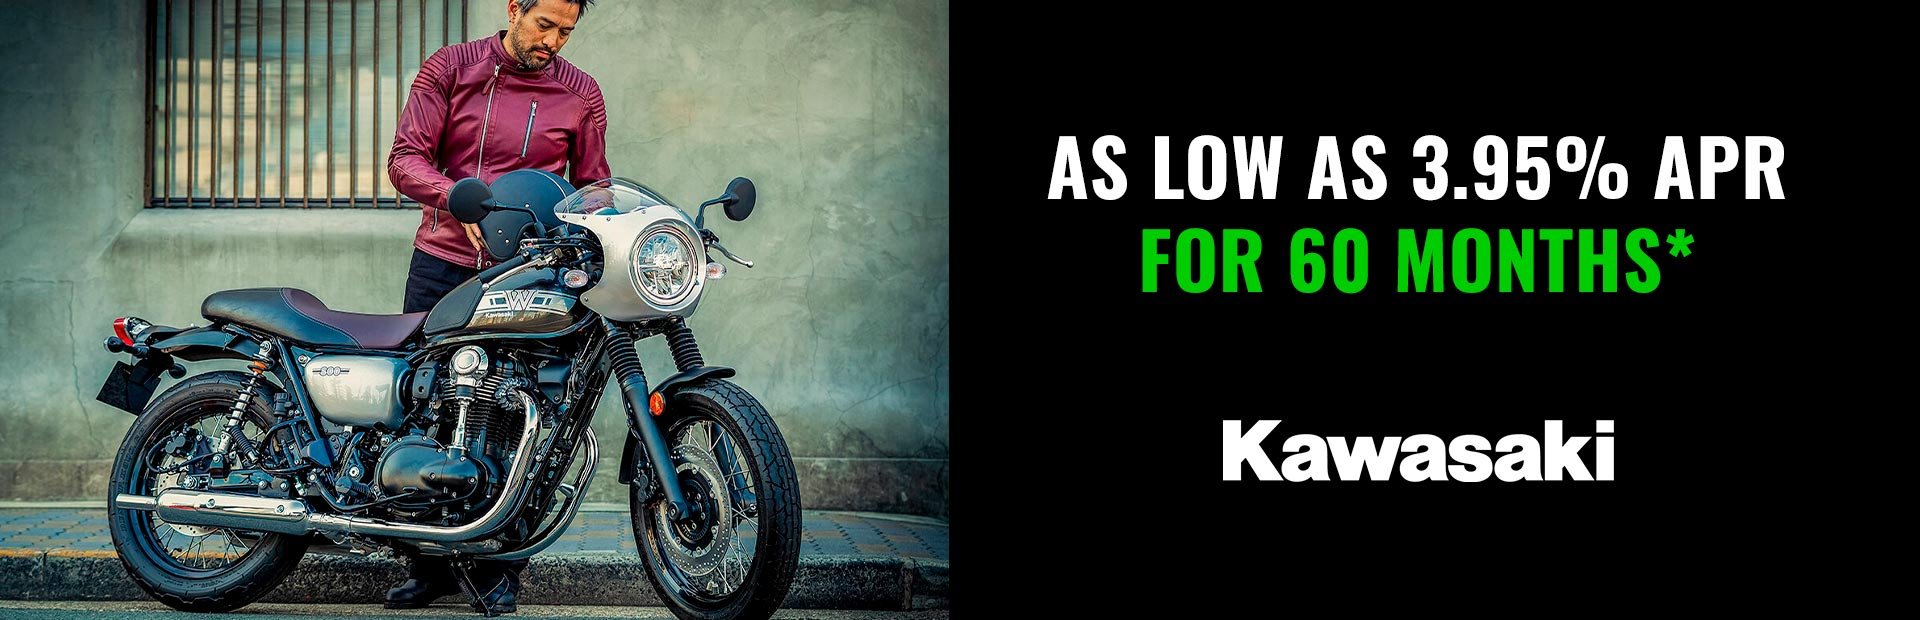 Kawasaki: AS LOW AS 3.95% APR FOR 60 MONTHS*